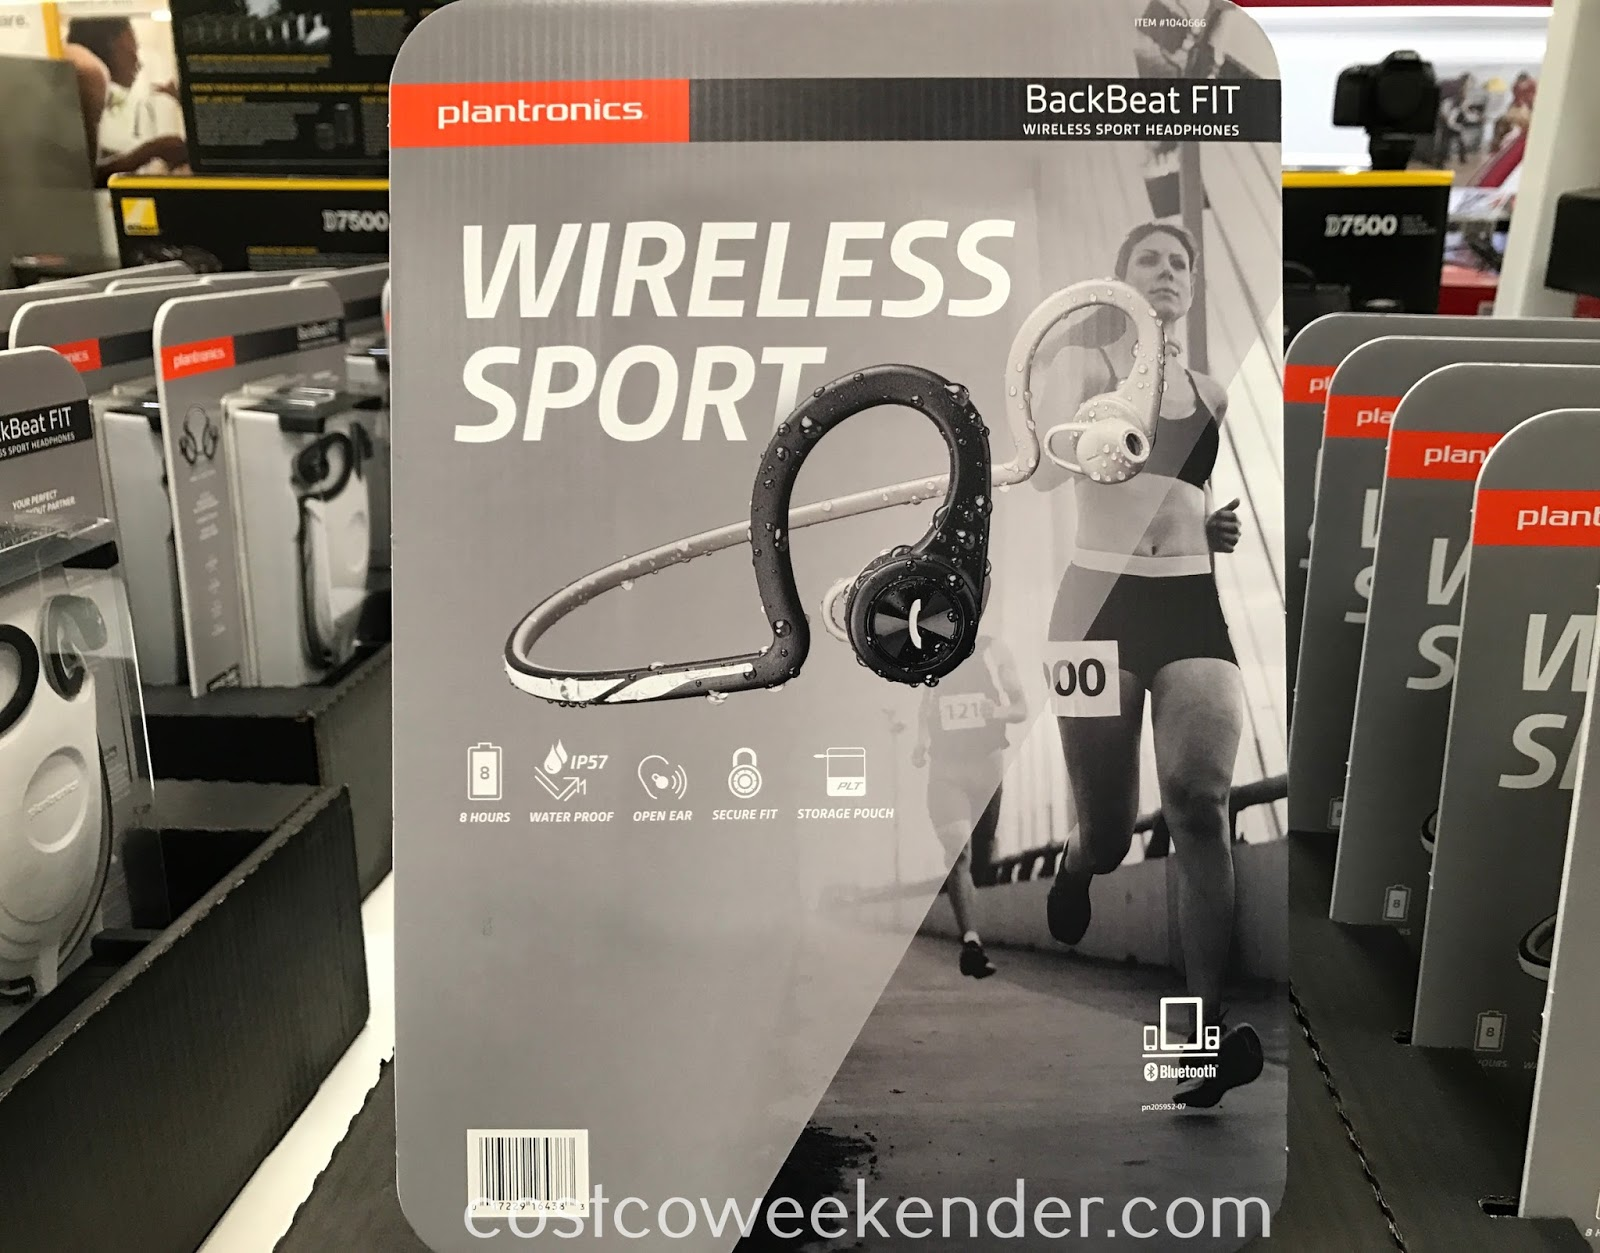 Listen to some music while you exercise with the Plantronics BackBeat FIT Wireless Sport Headphones